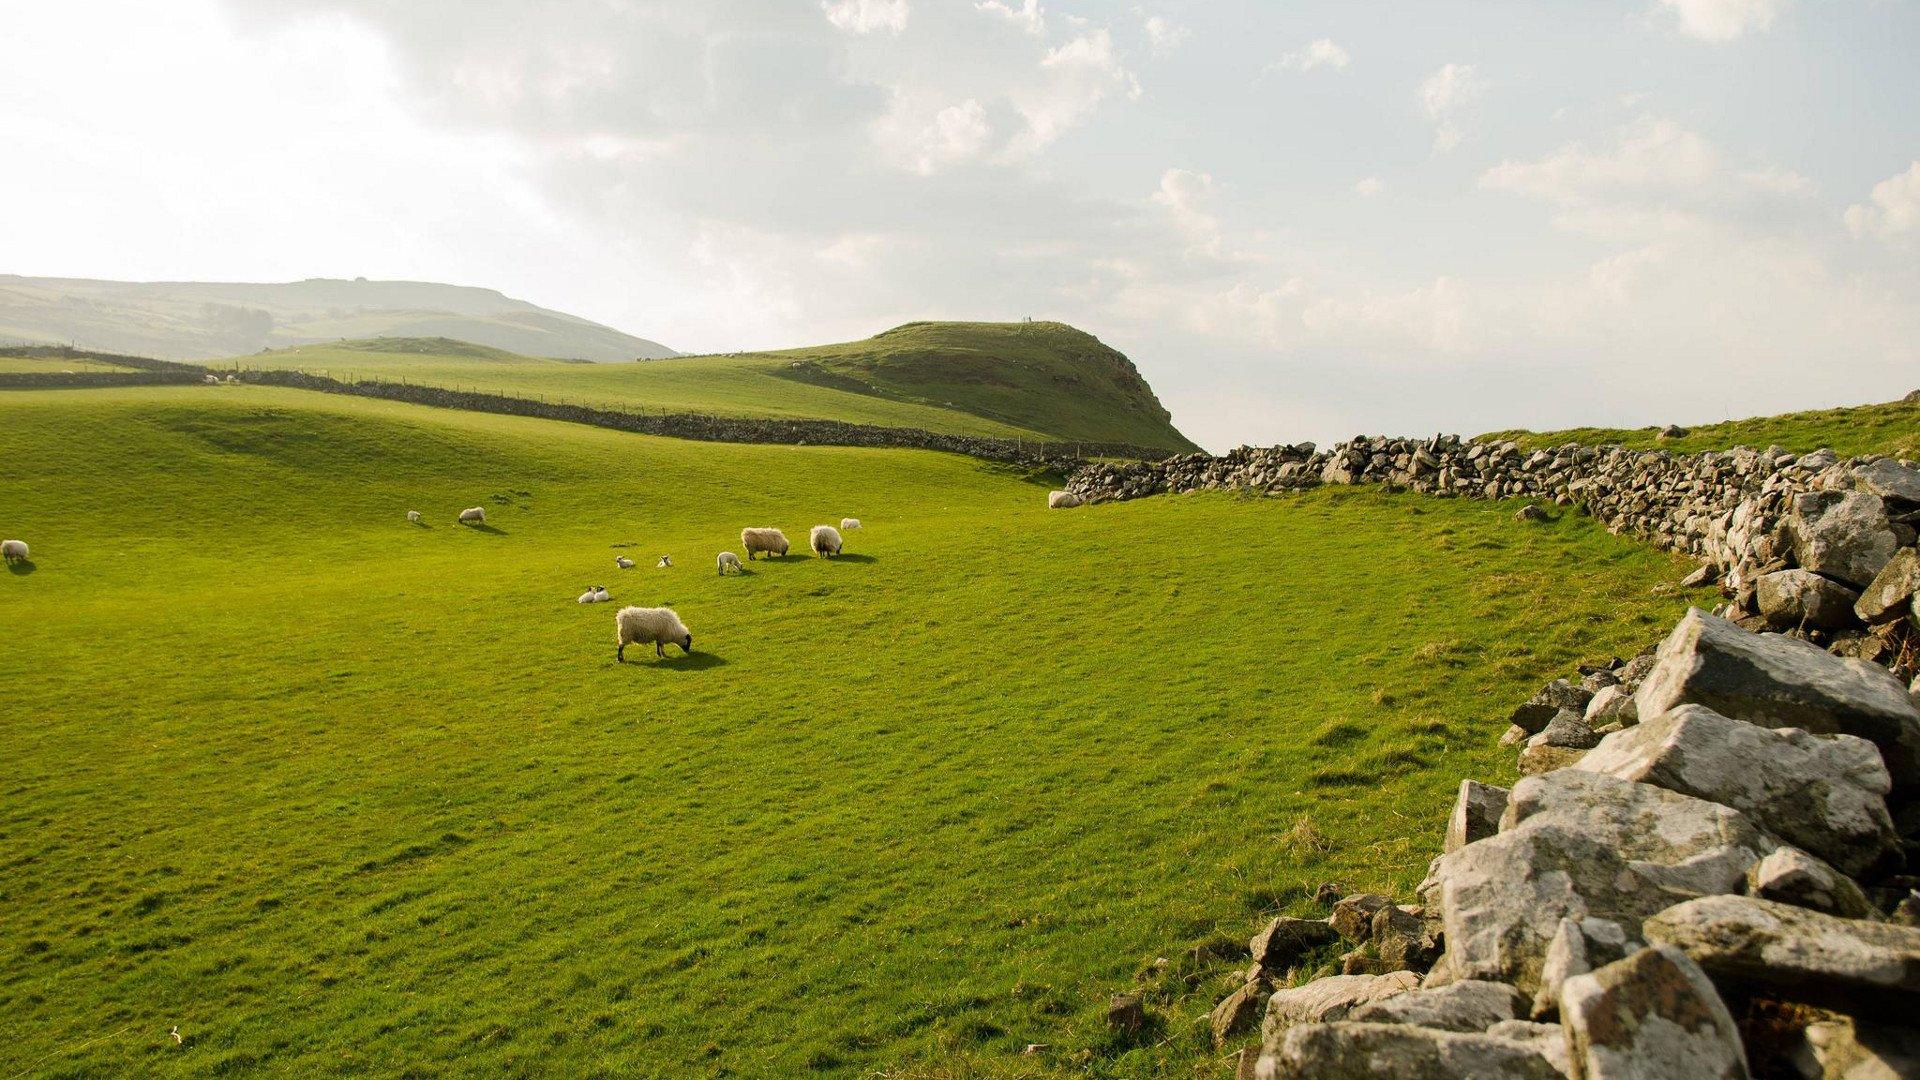 Sheep Grazing in Northern Ireland [1920x1080] wallpapers 1920x1080